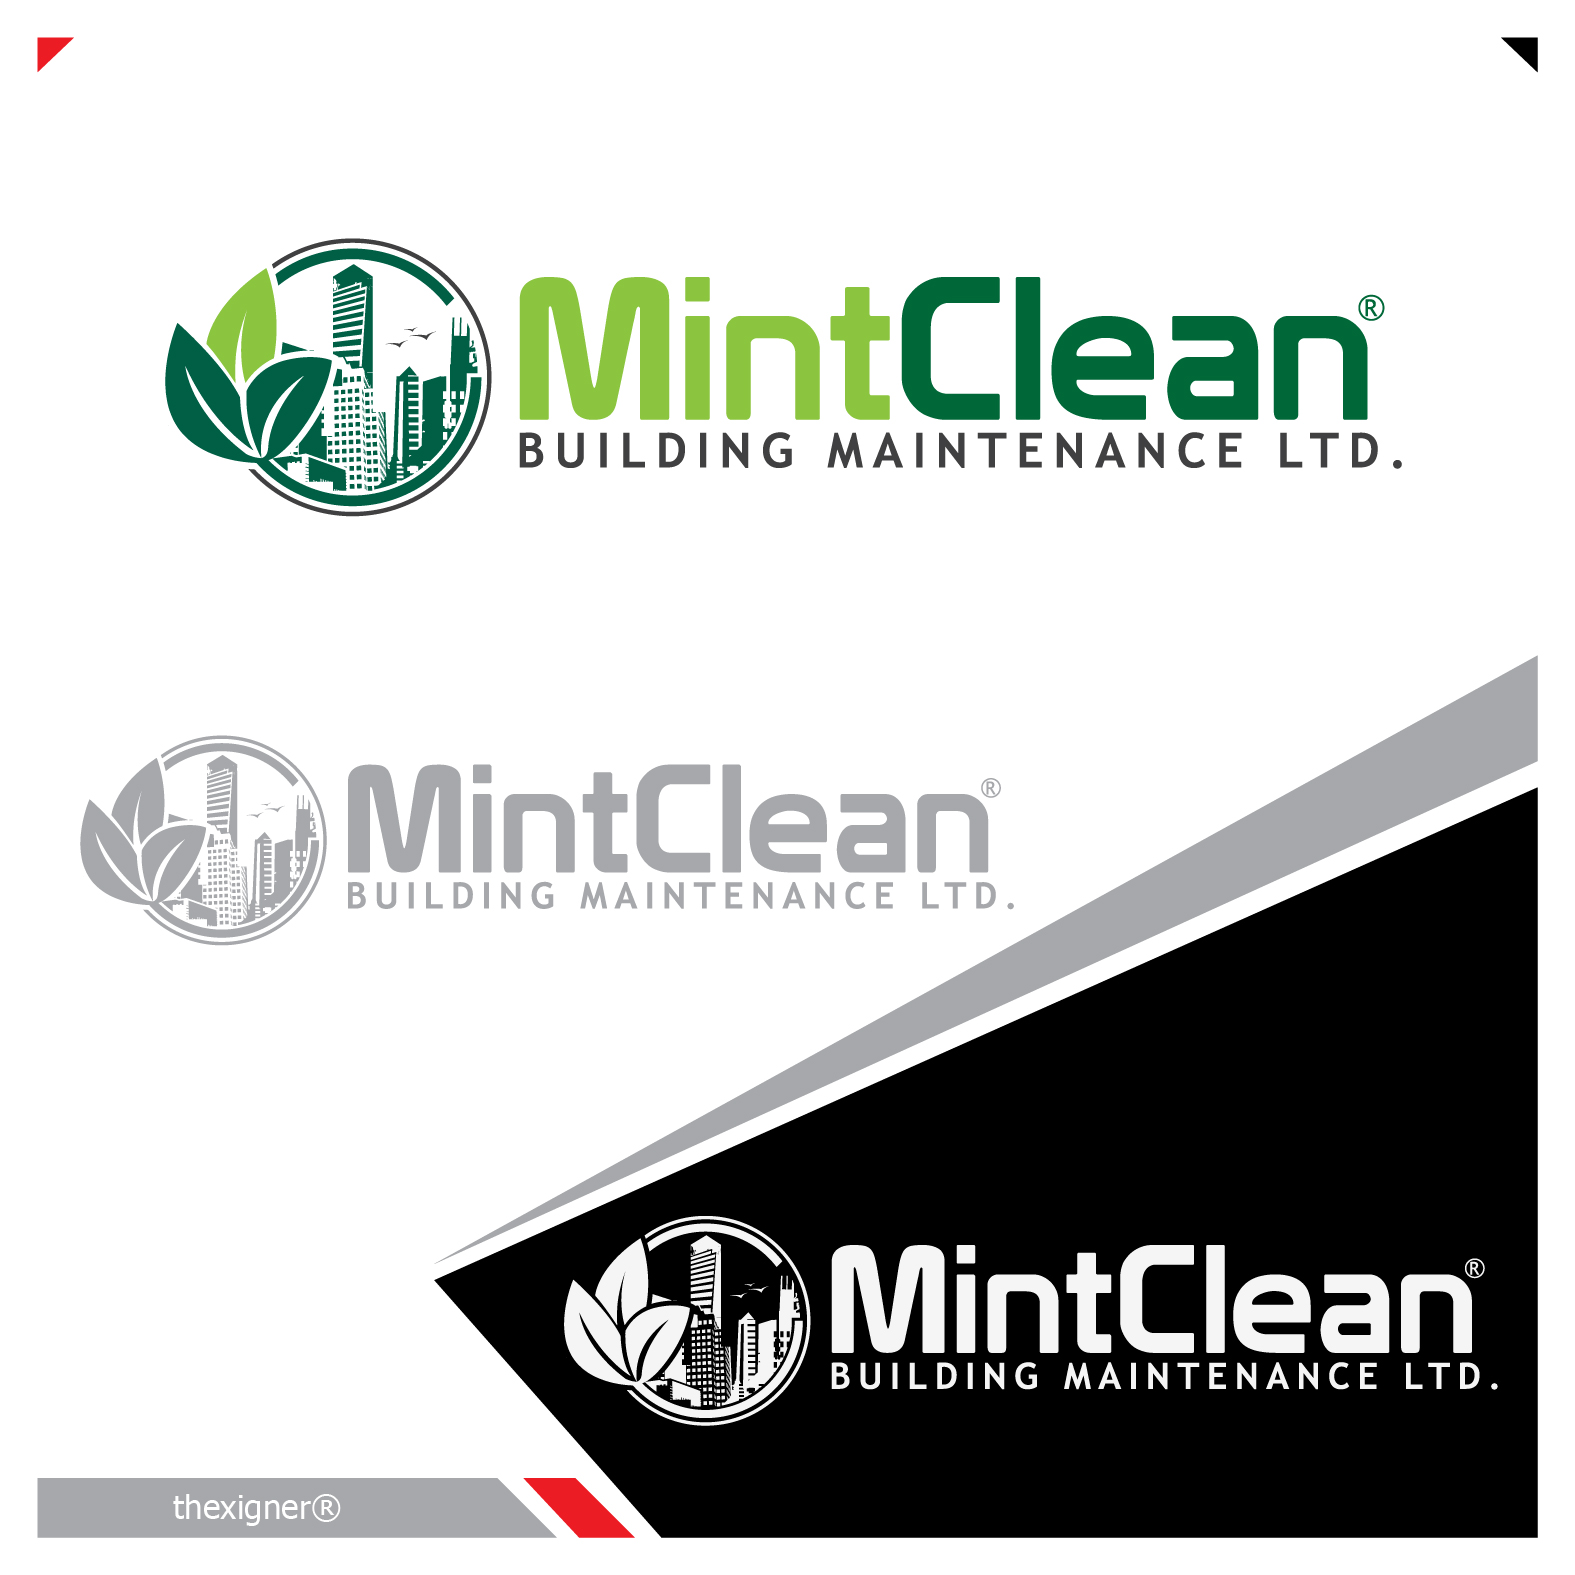 Logo Design by lagalag - Entry No. 73 in the Logo Design Contest MintClean Building Maintenance Ltd. Logo Design.